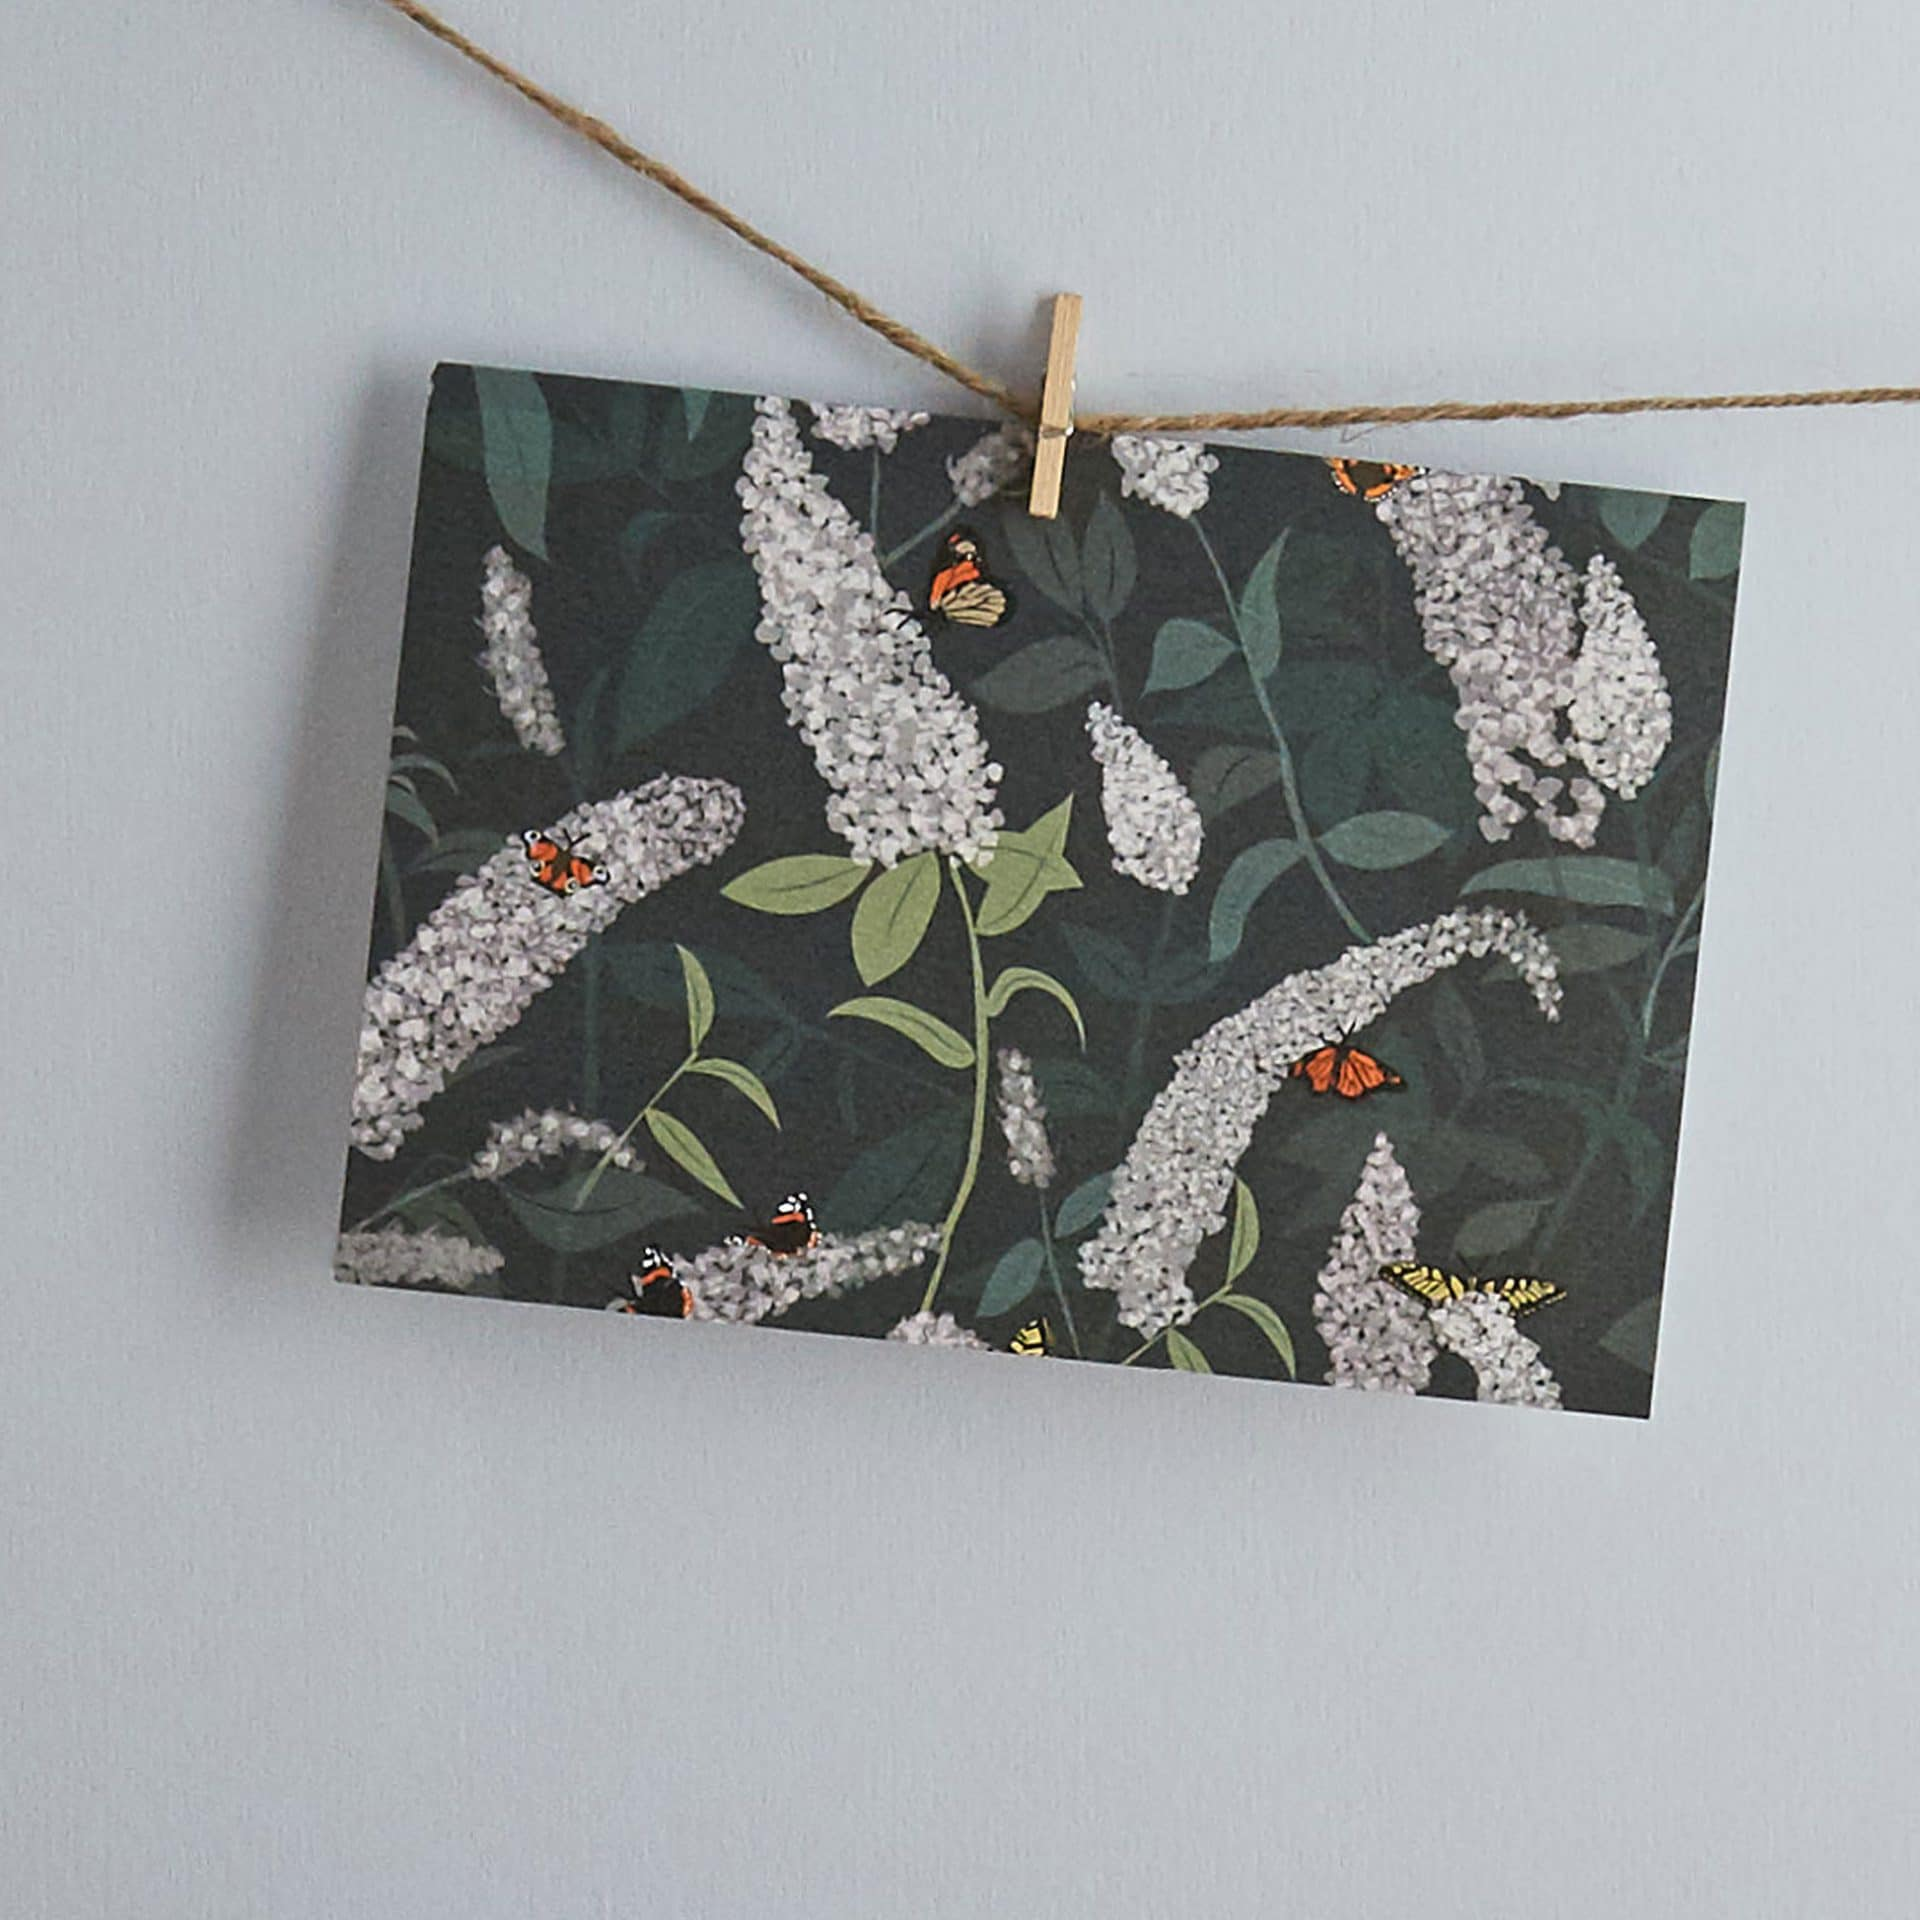 New Buddleia greeting card designed by Lorna Syson